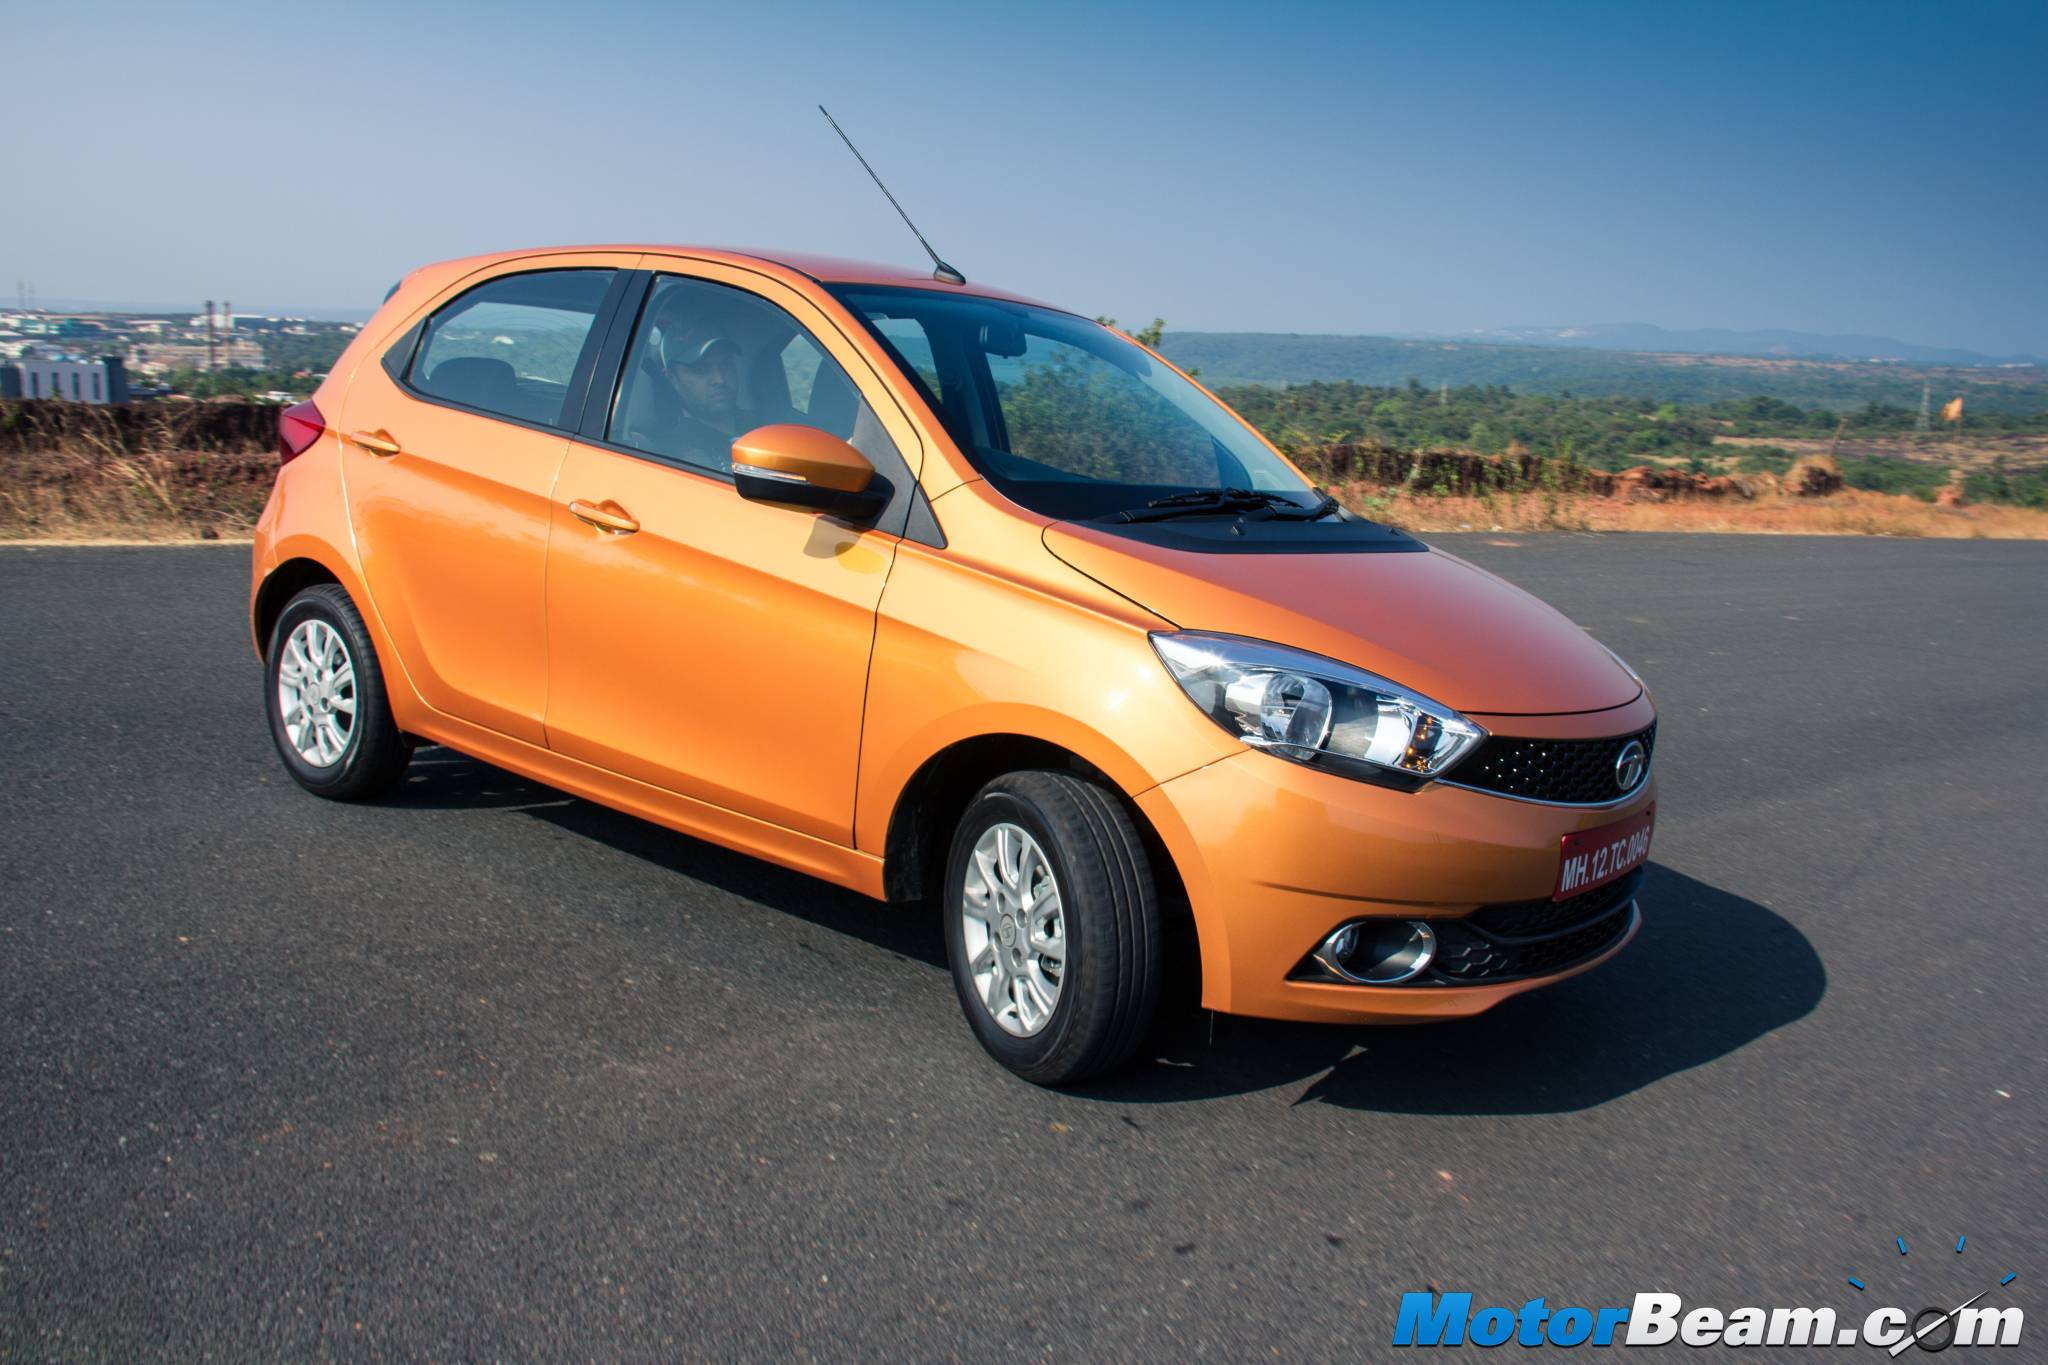 2016 Tata Zica Review